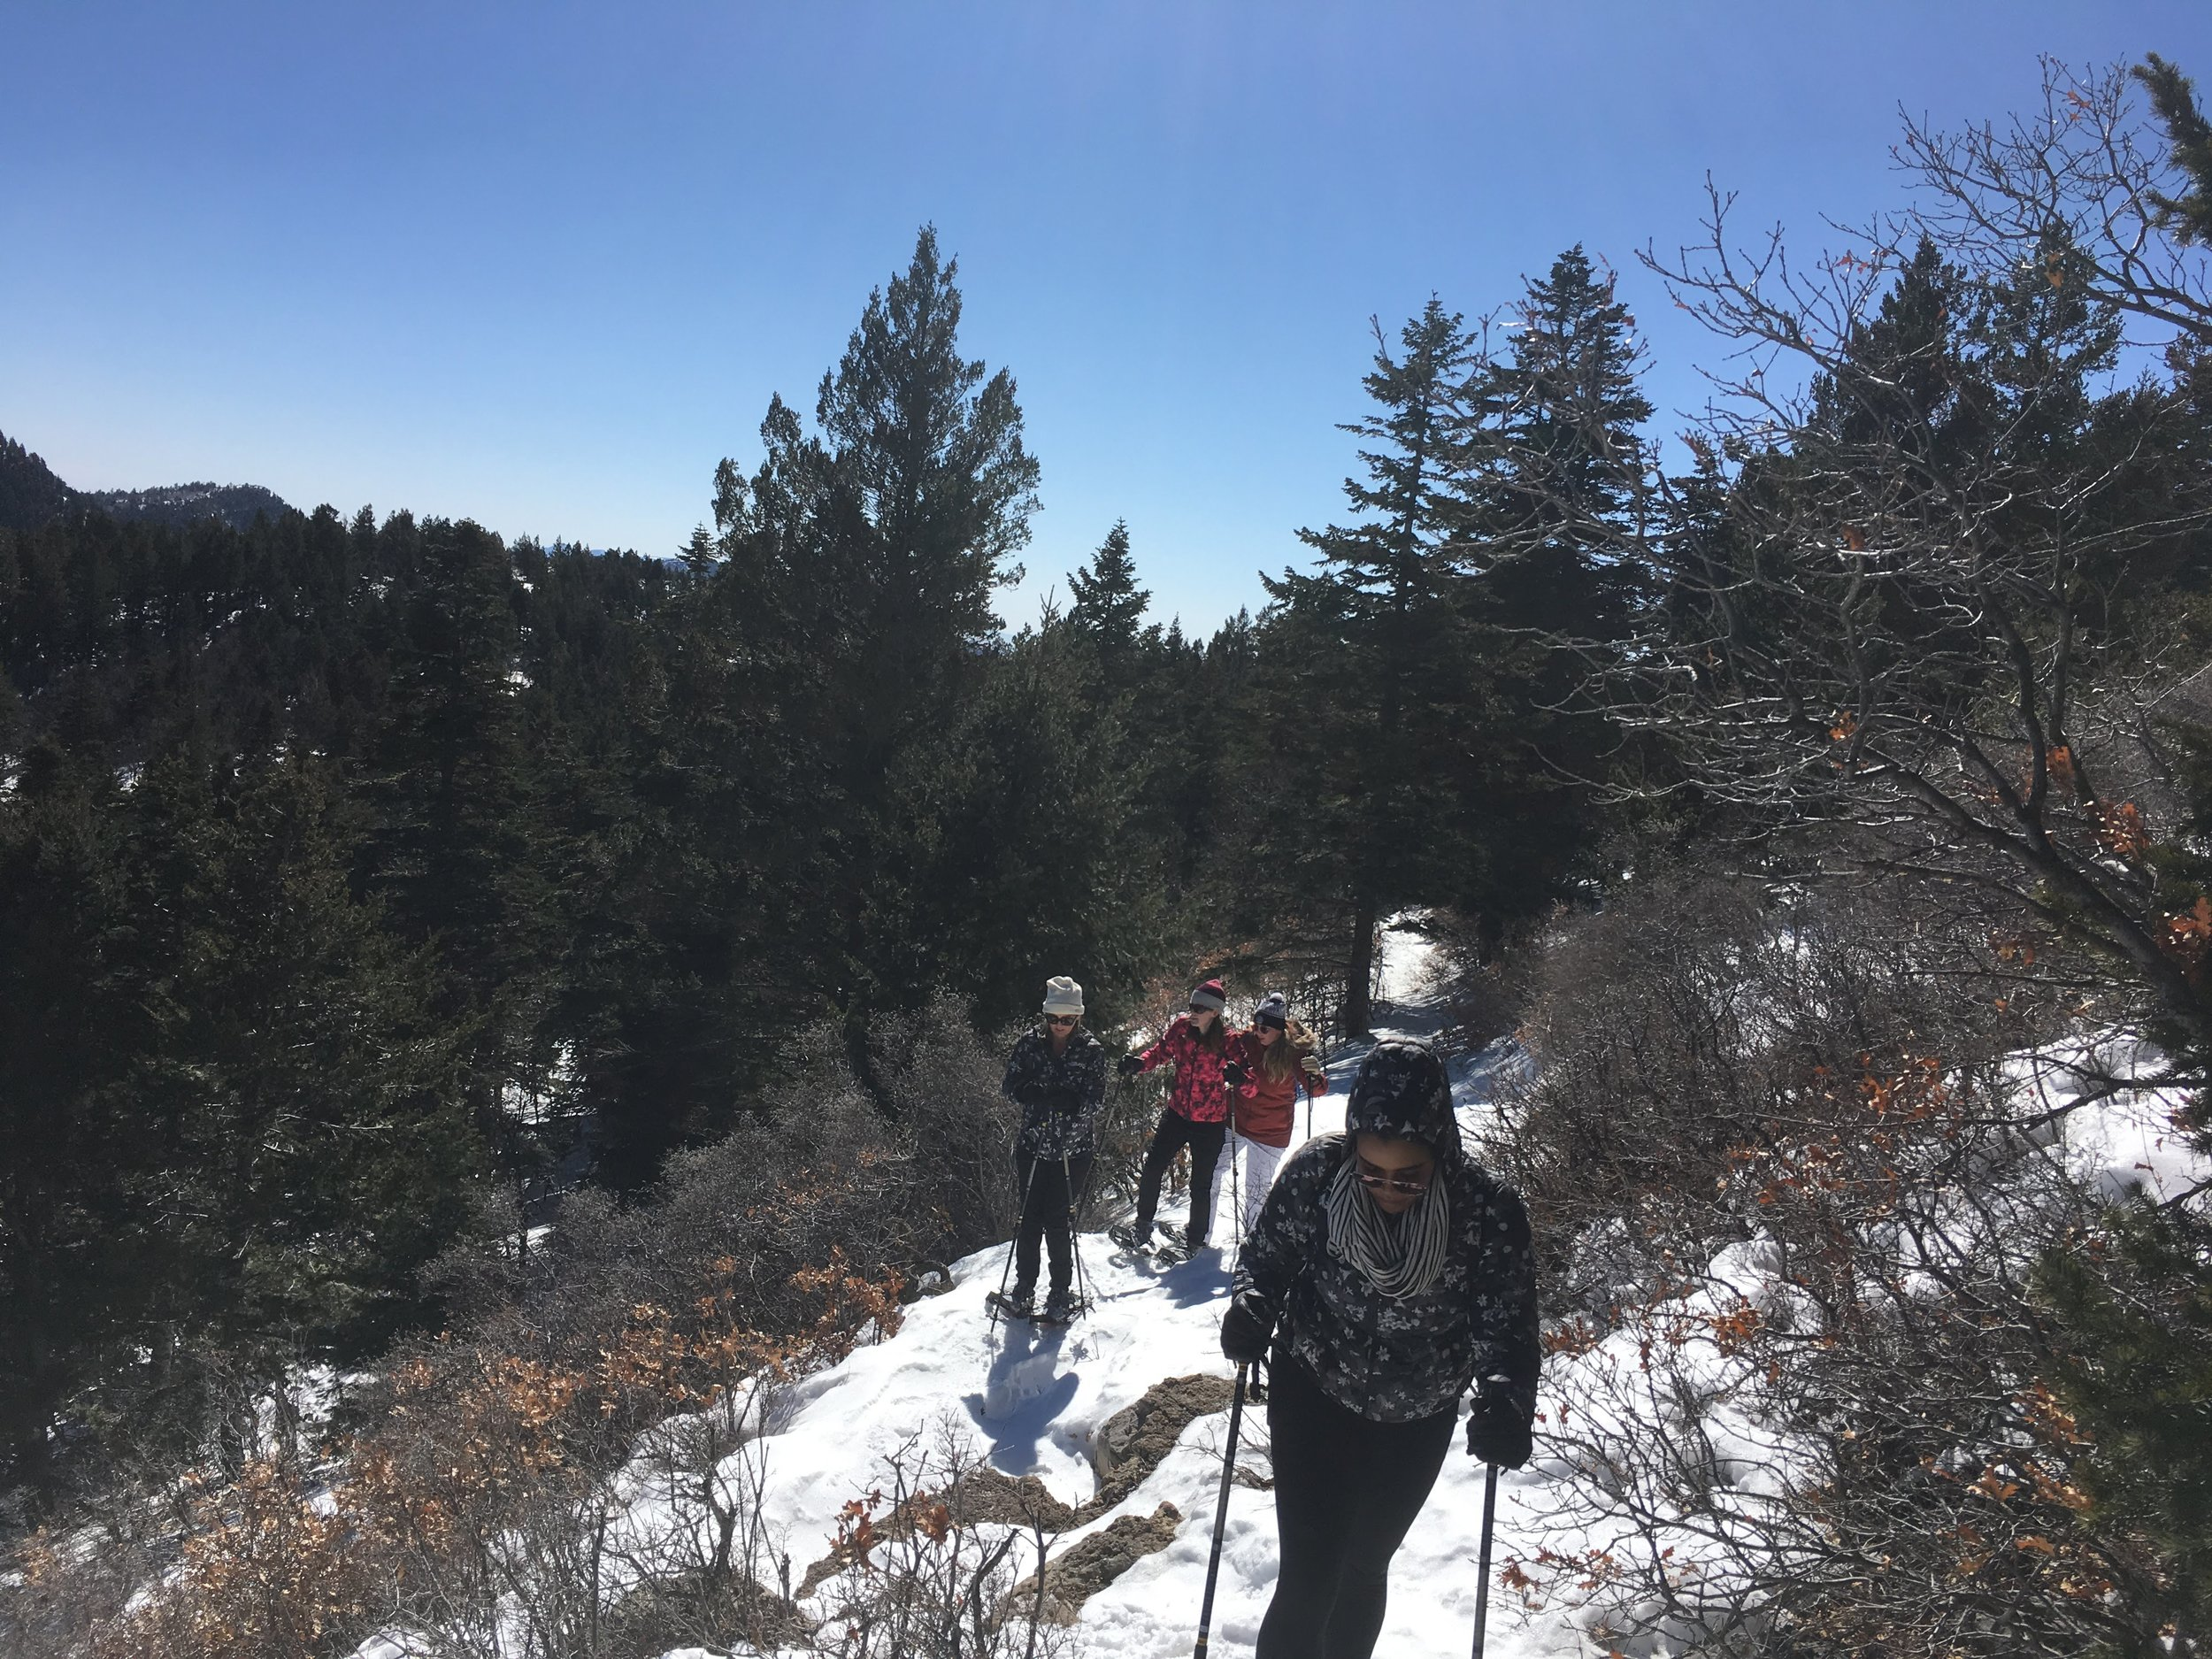 A fun snowshoe trek is well worth the work